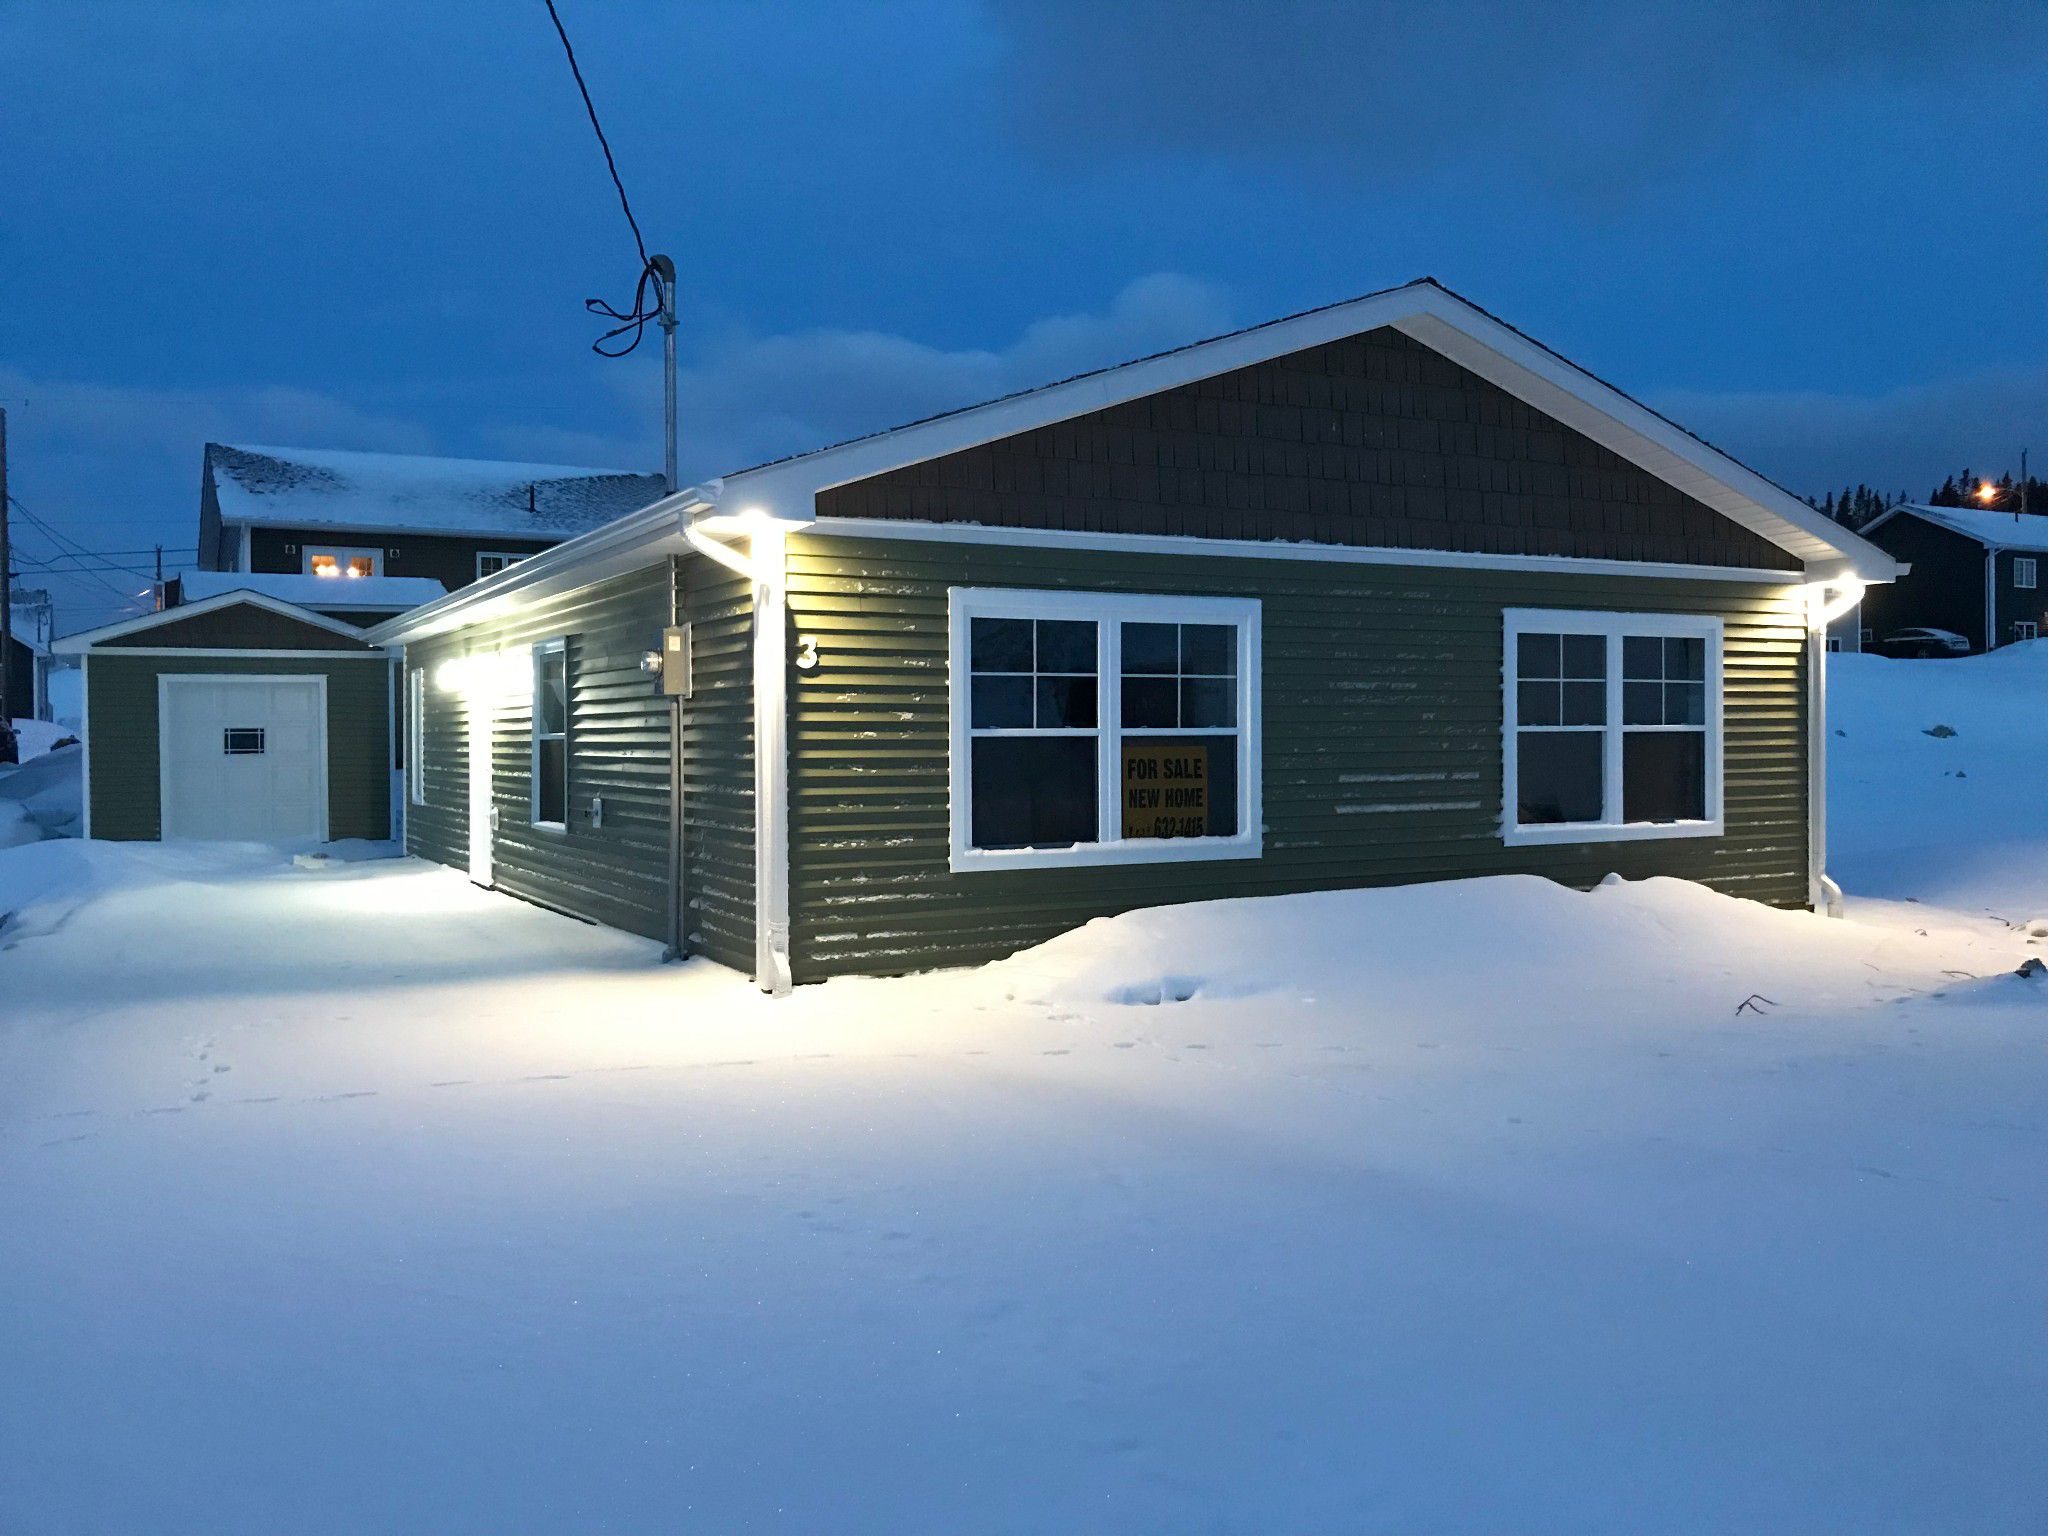 Main Photo: 73 Albert Street in Massey Drive: House for sale